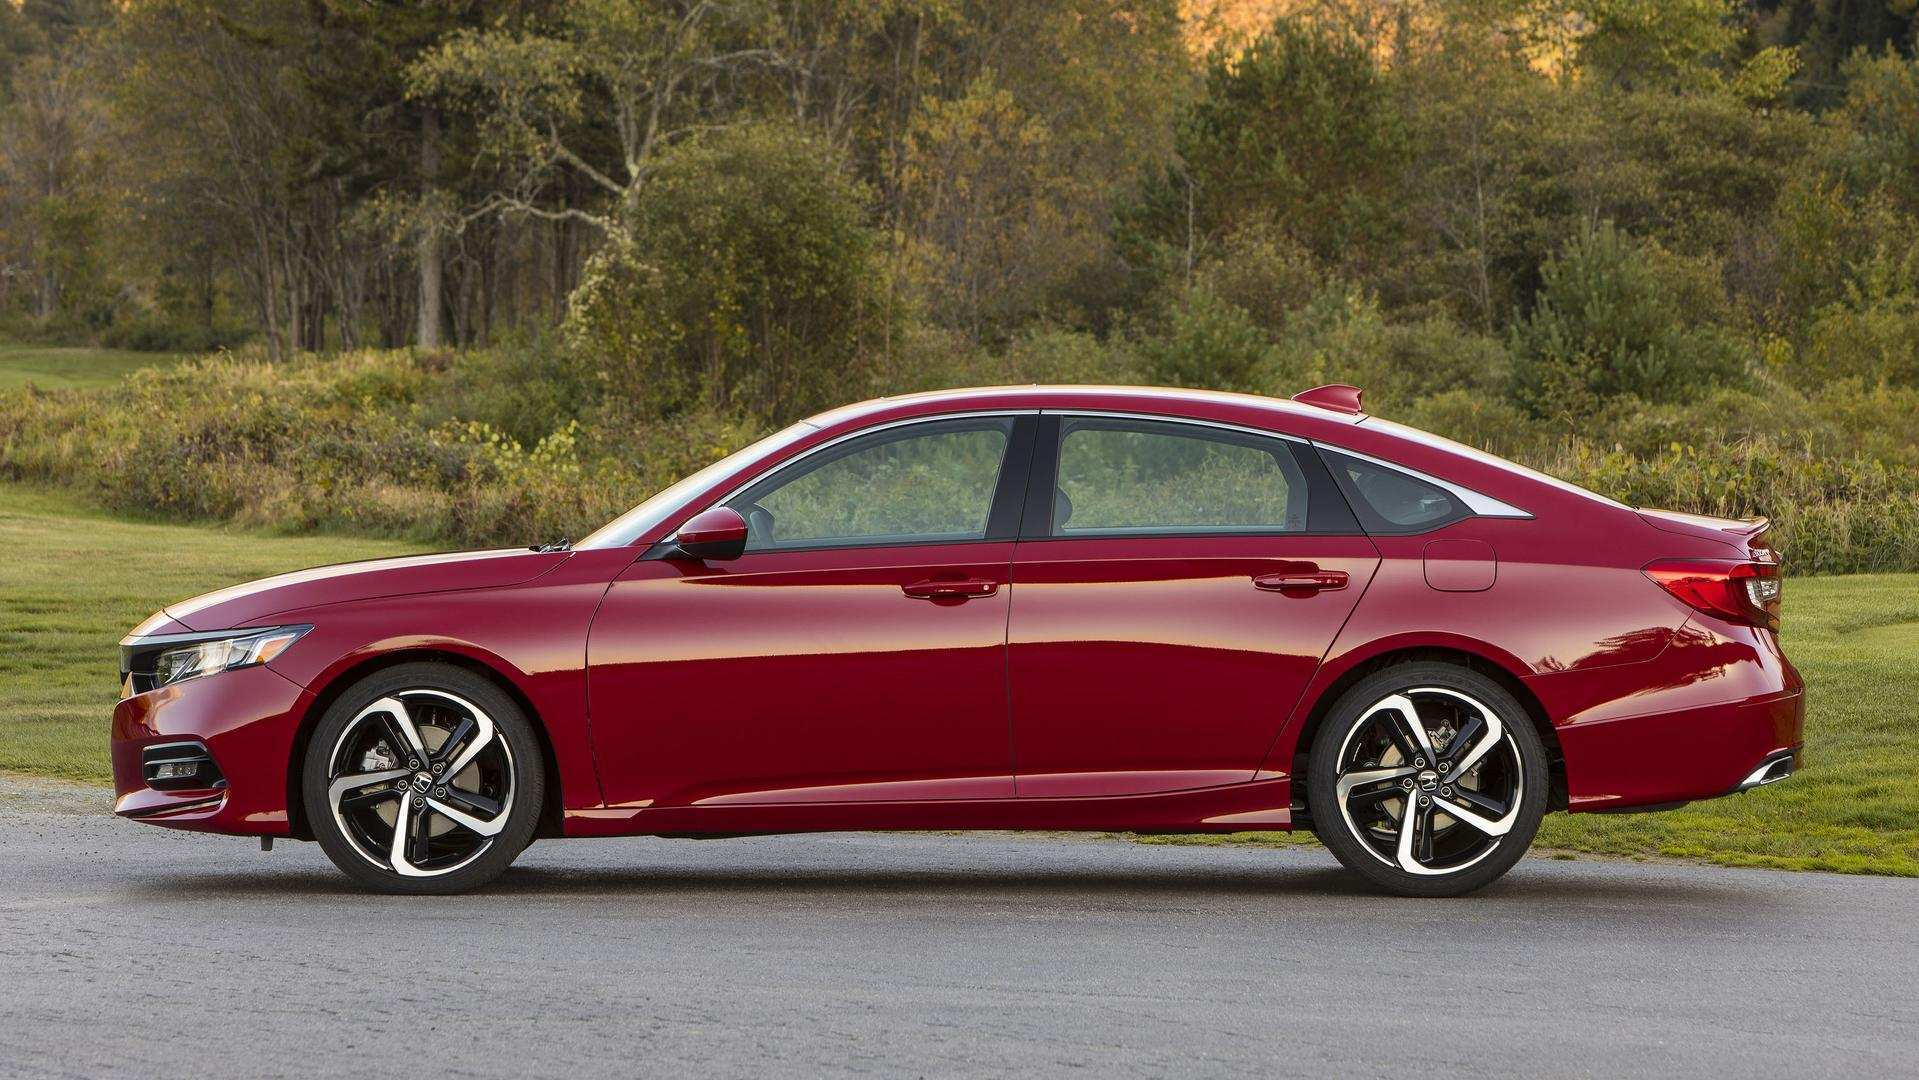 20 All New 2019 Honda Accord Wagon Pricing by 2019 Honda Accord Wagon